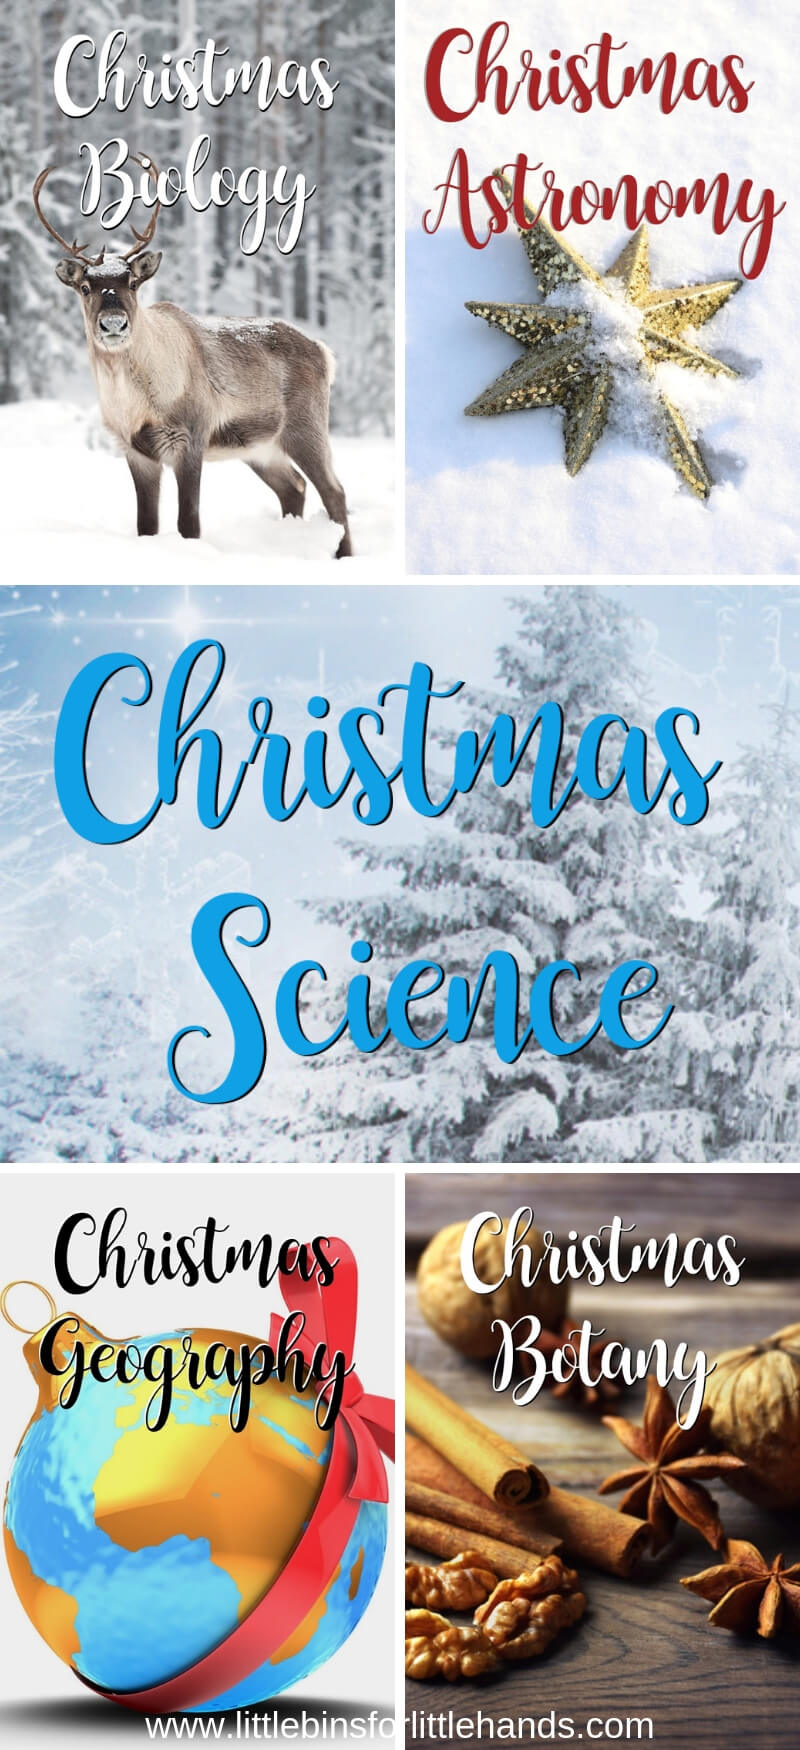 5 Days of Christmas Science Projects and Fun Science facts for Christmas with Kids